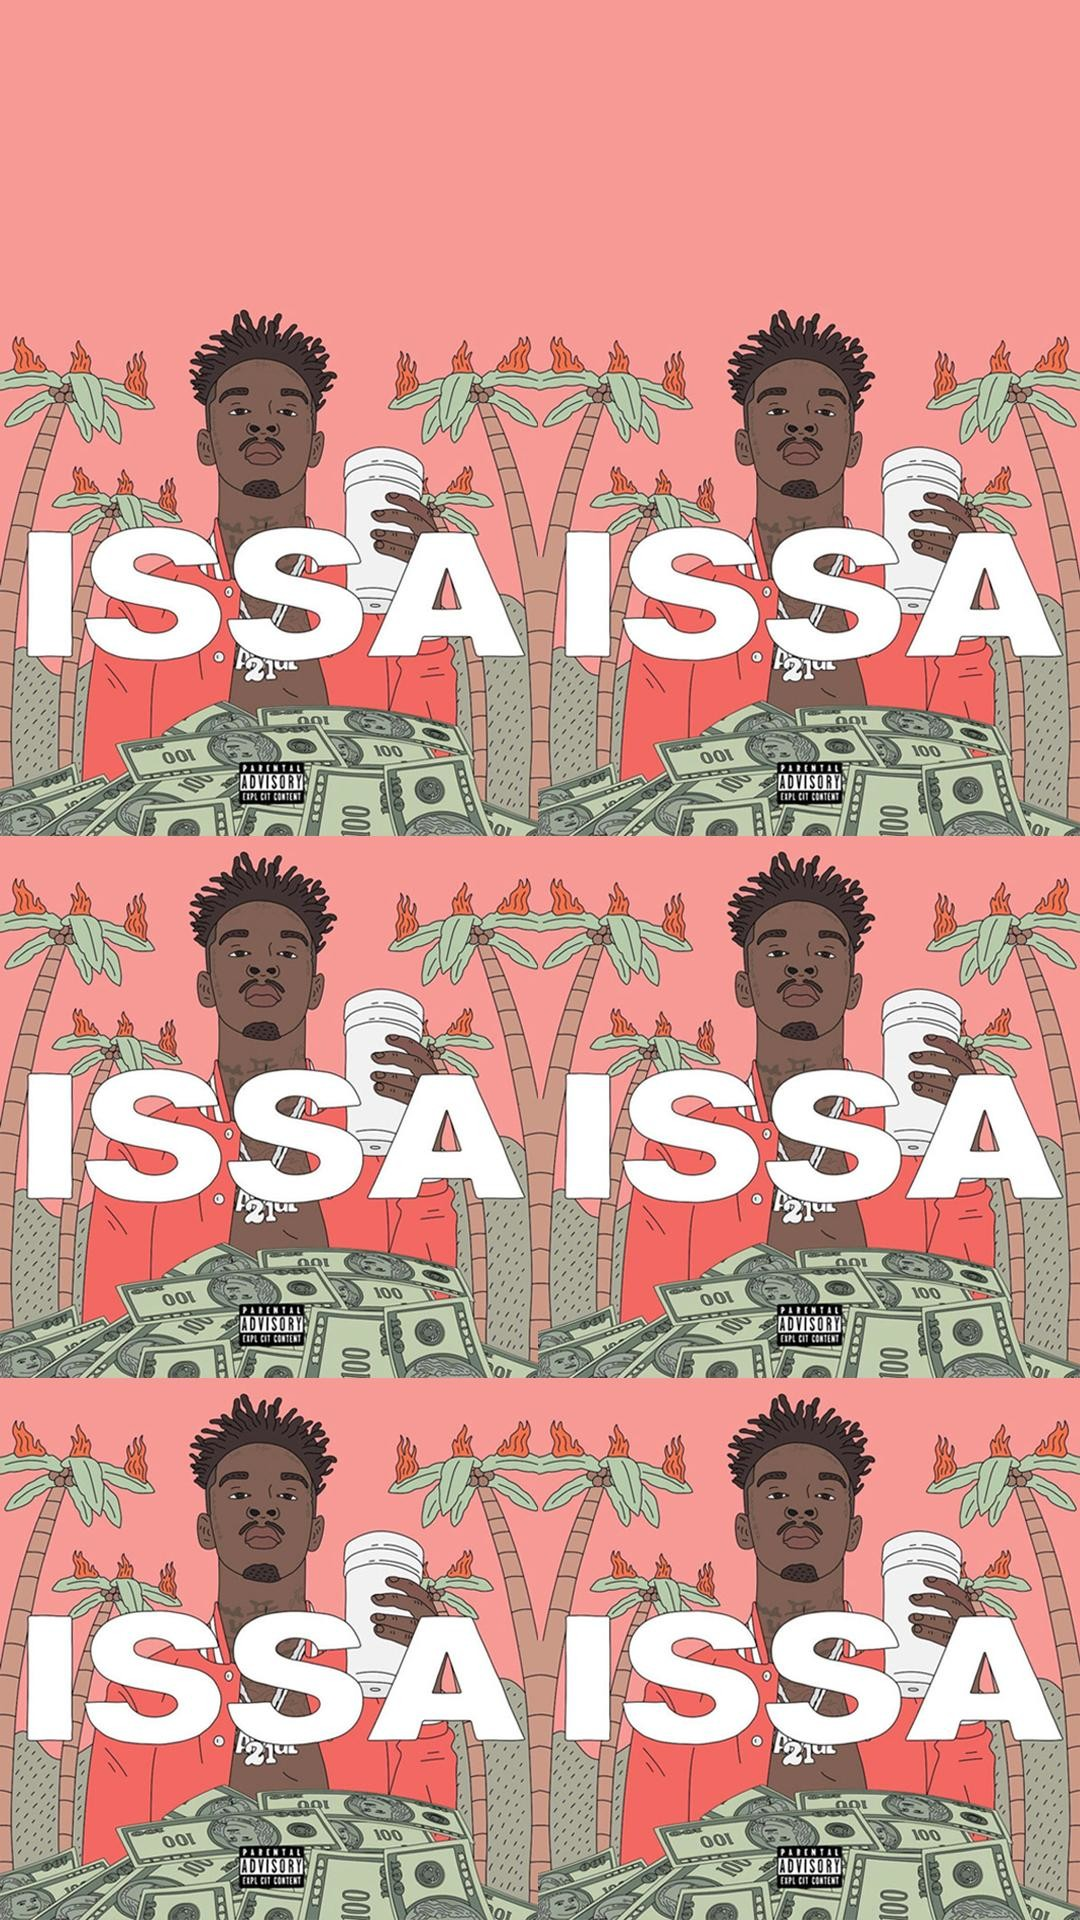 1080x1920 21 Savage ISSA album Phone wallpapers (different variations)